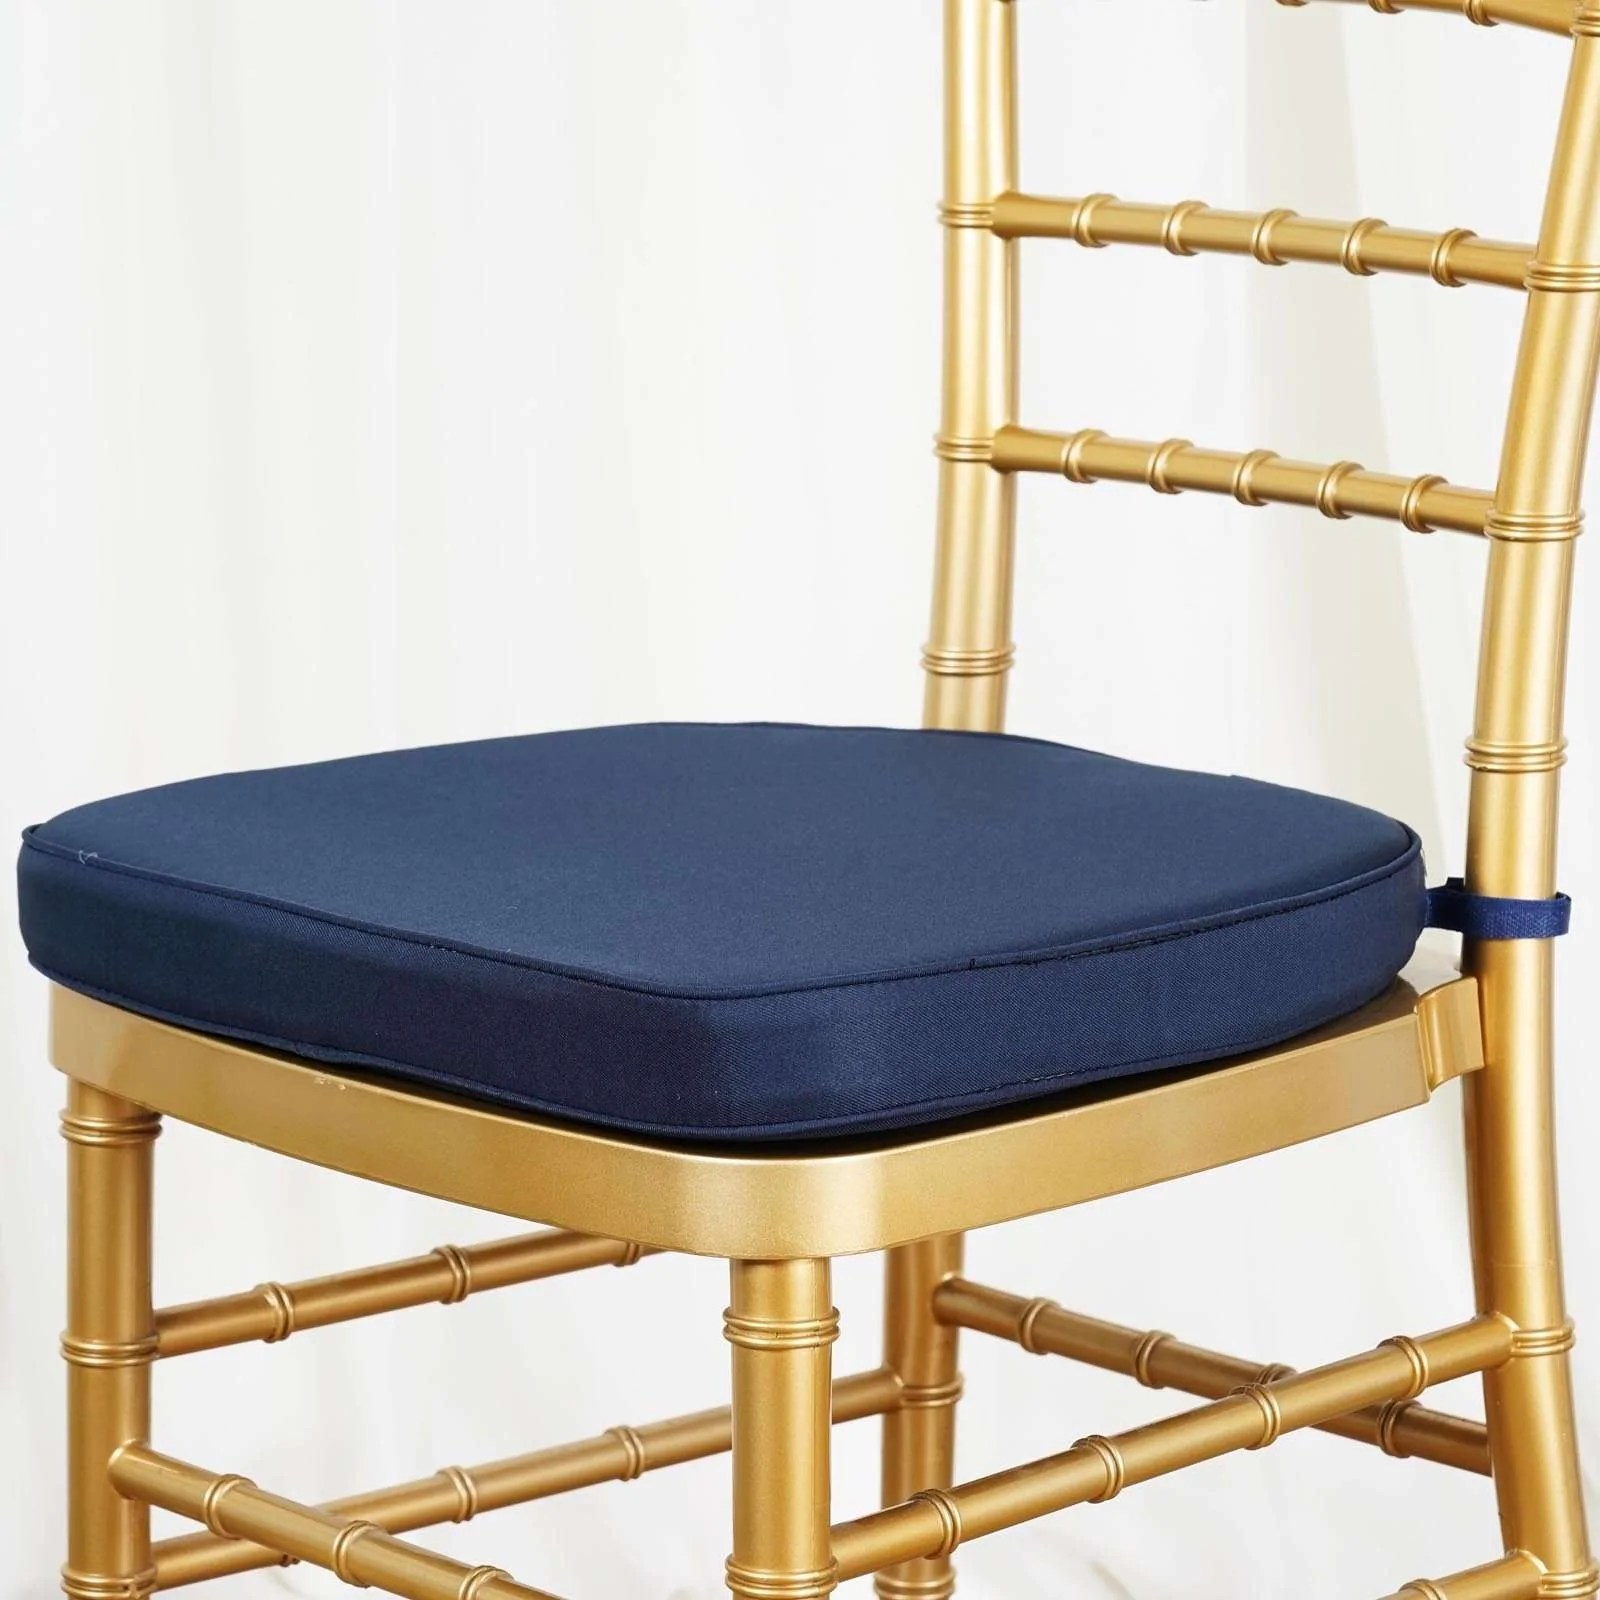 chiavari chairs wholesale knoll tulip chair 2 thick navy blue cushion for beechwood wood resin party event decoration